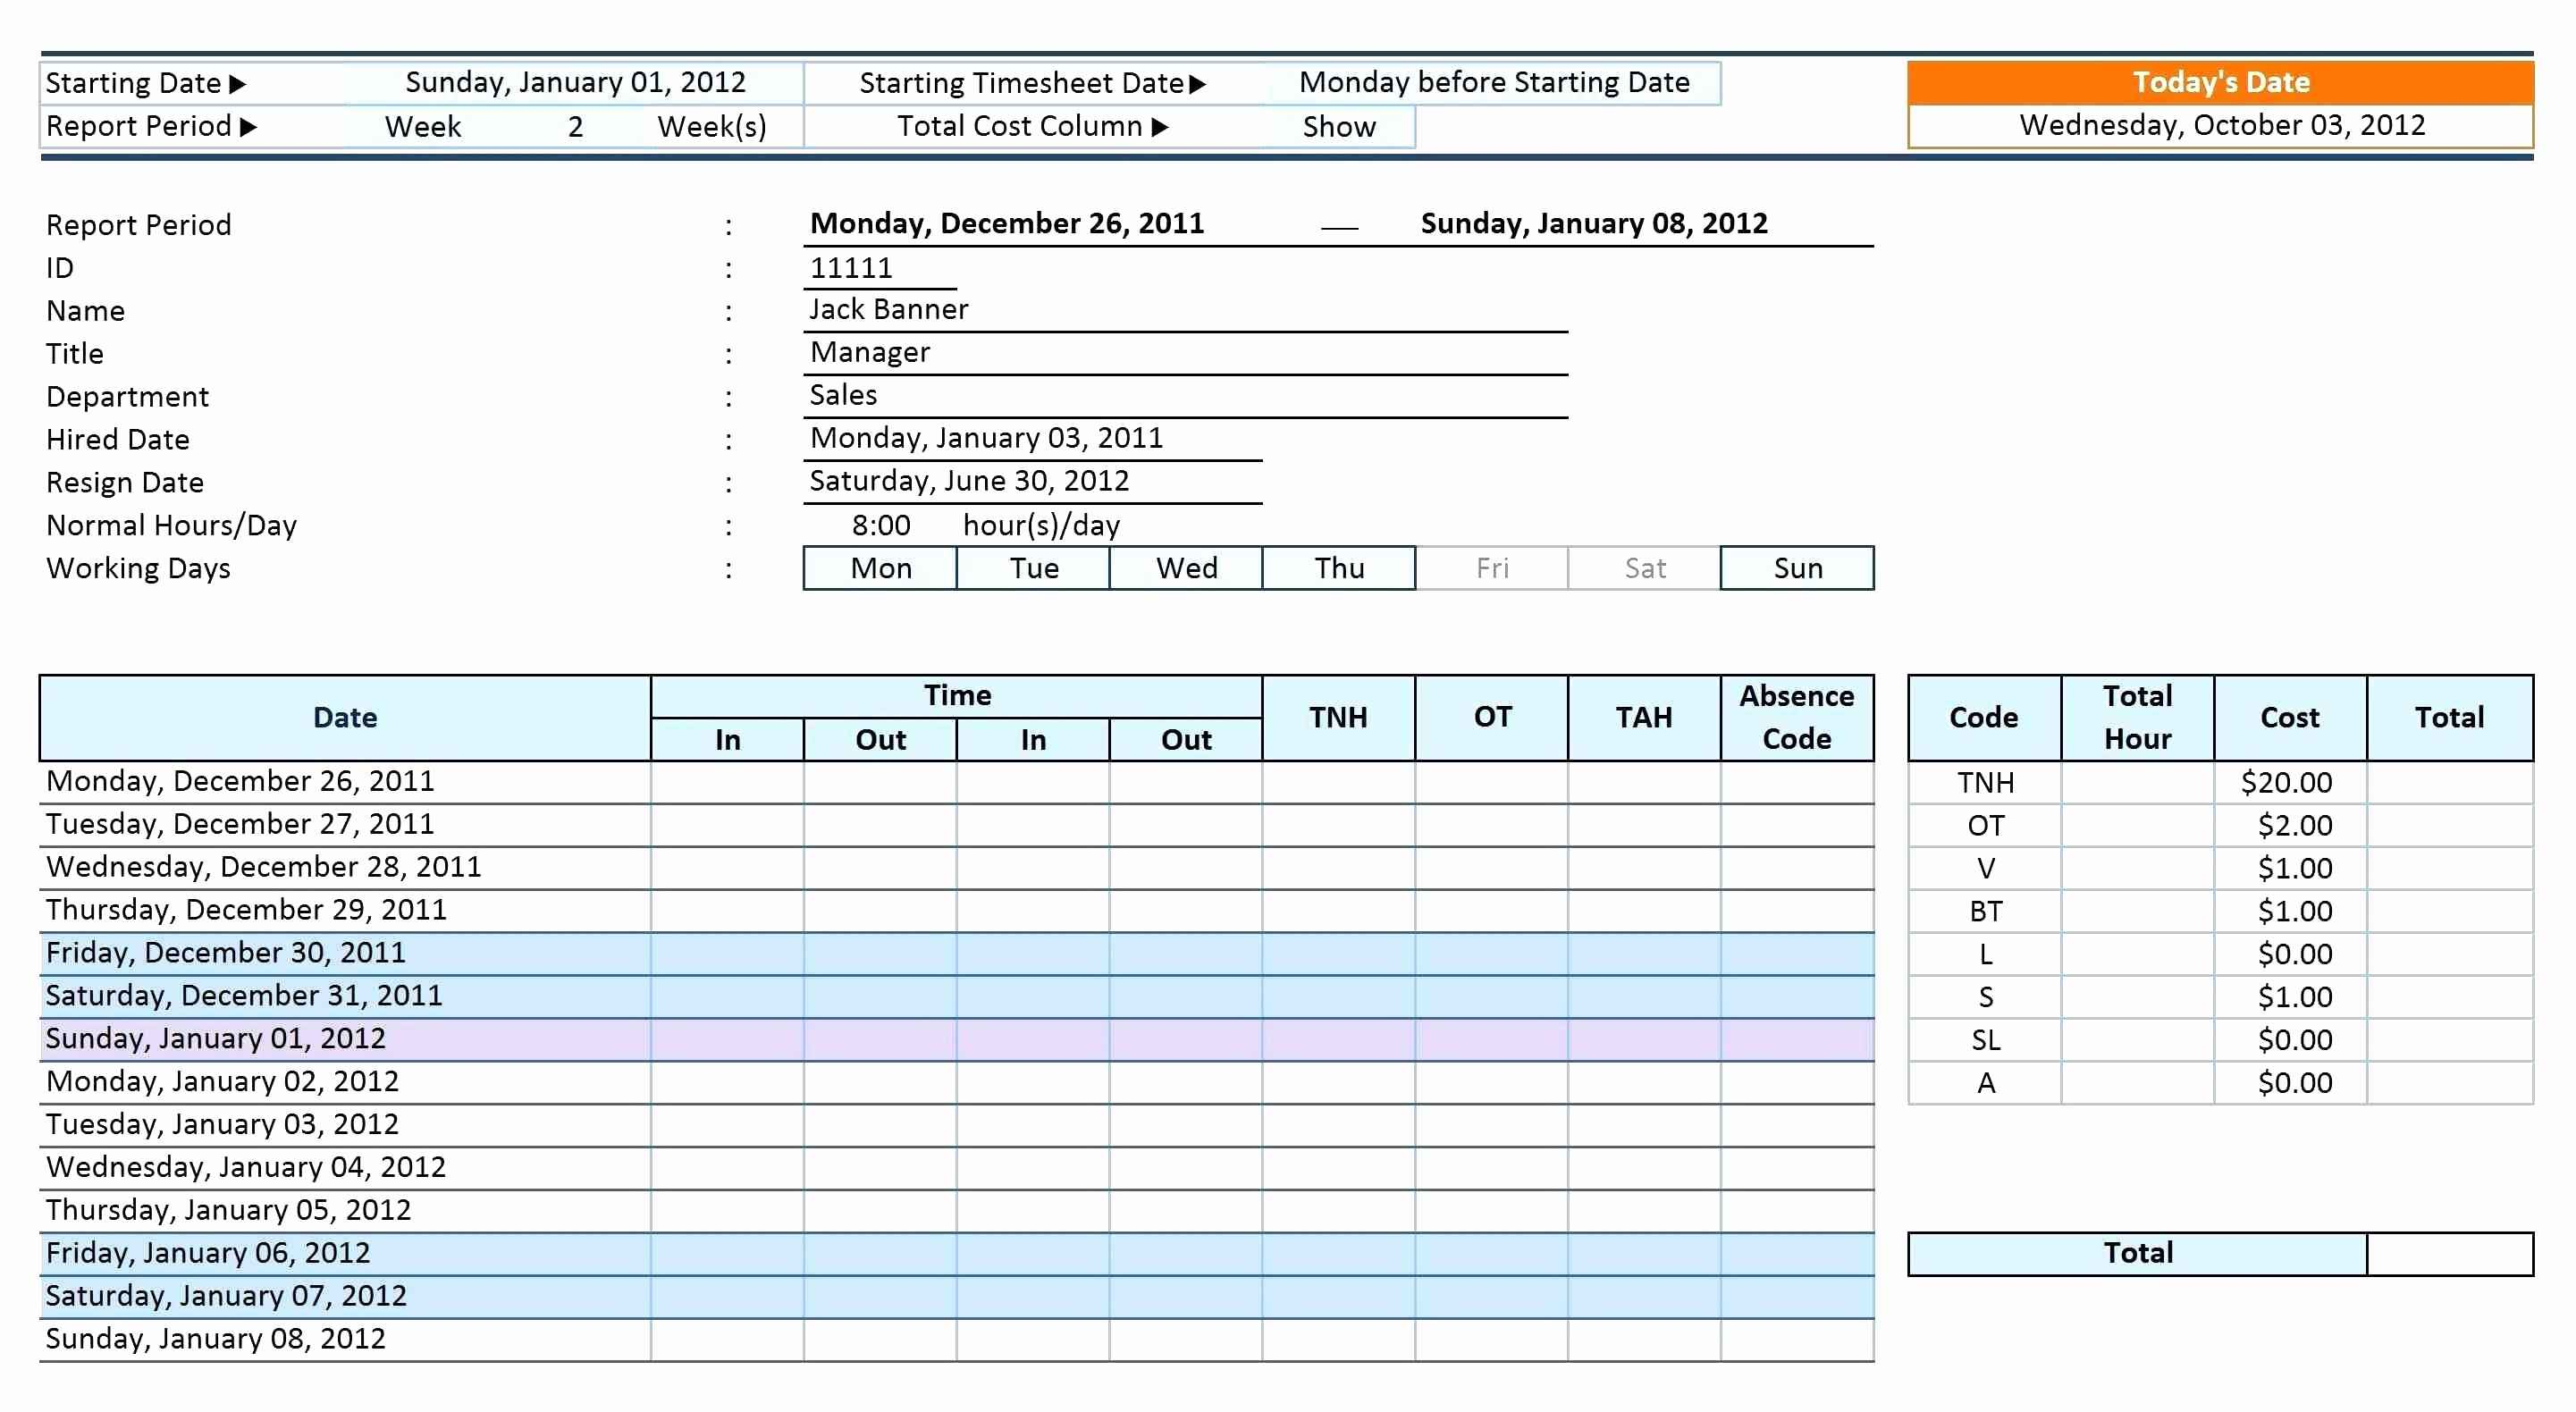 Stock Cost Basis Spreadsheet For Cost Basis Spreadsheet Excel Calculator Youtube Homerage Stock